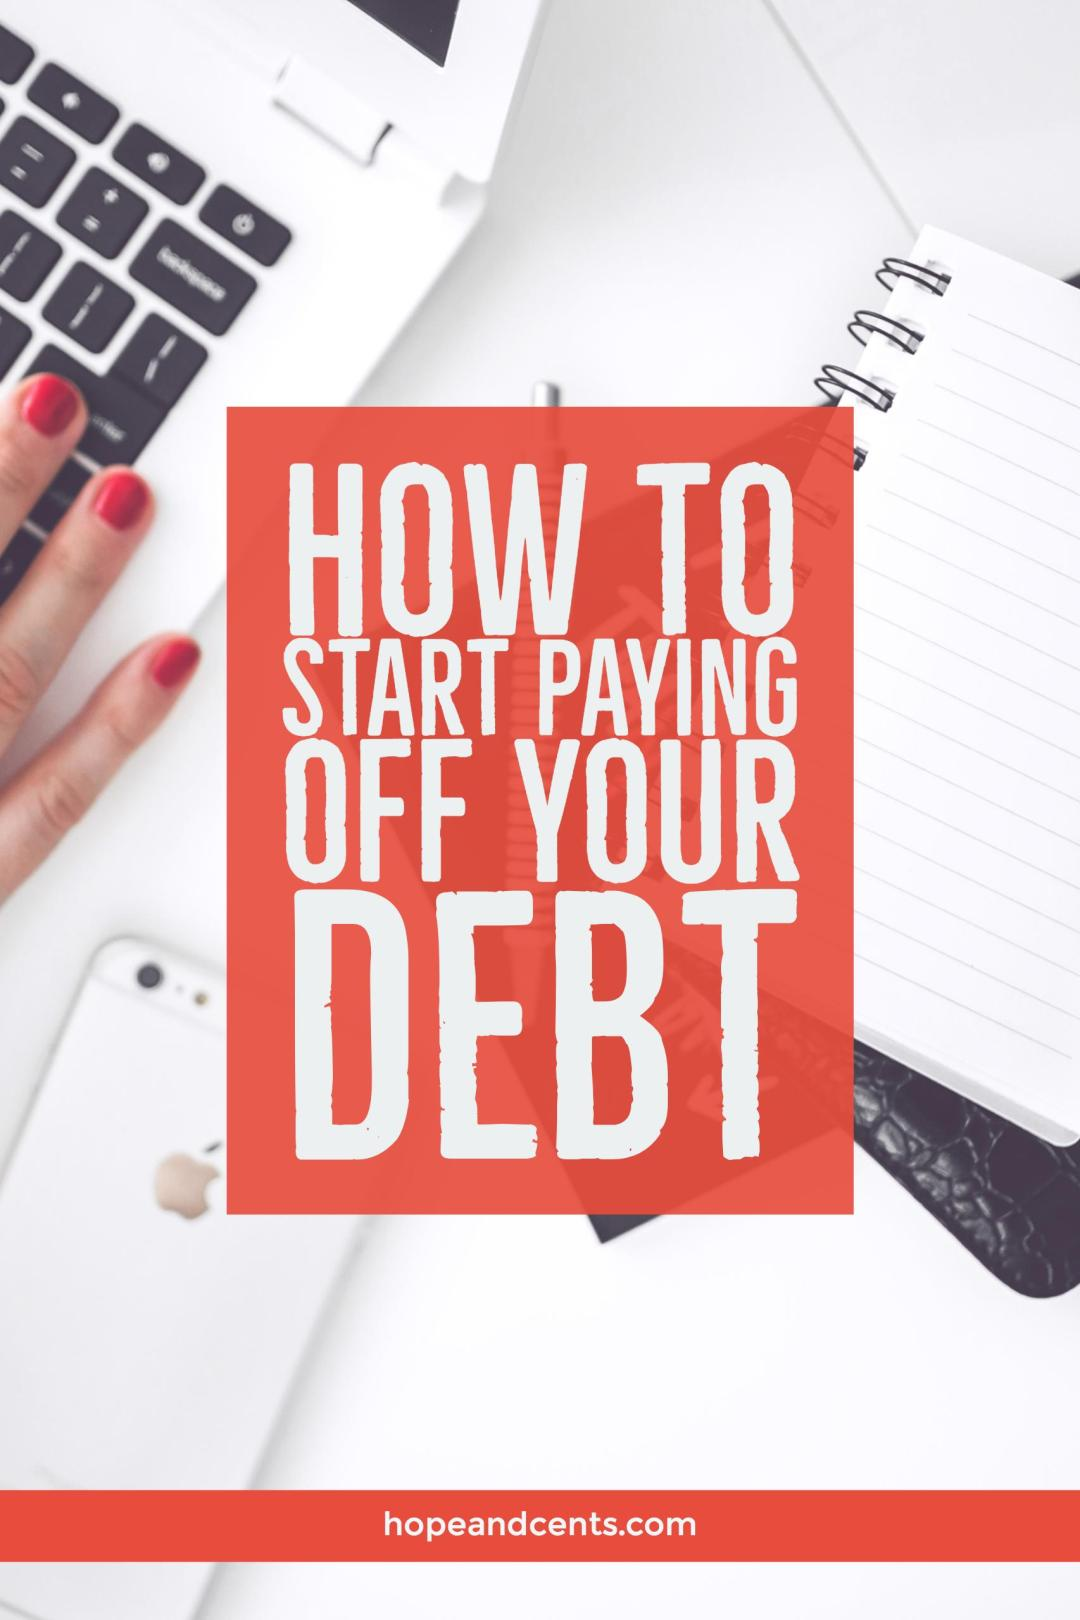 Paying off your debt can be daunting. Reduce the overwhelm with these tips to dump your debt for good!